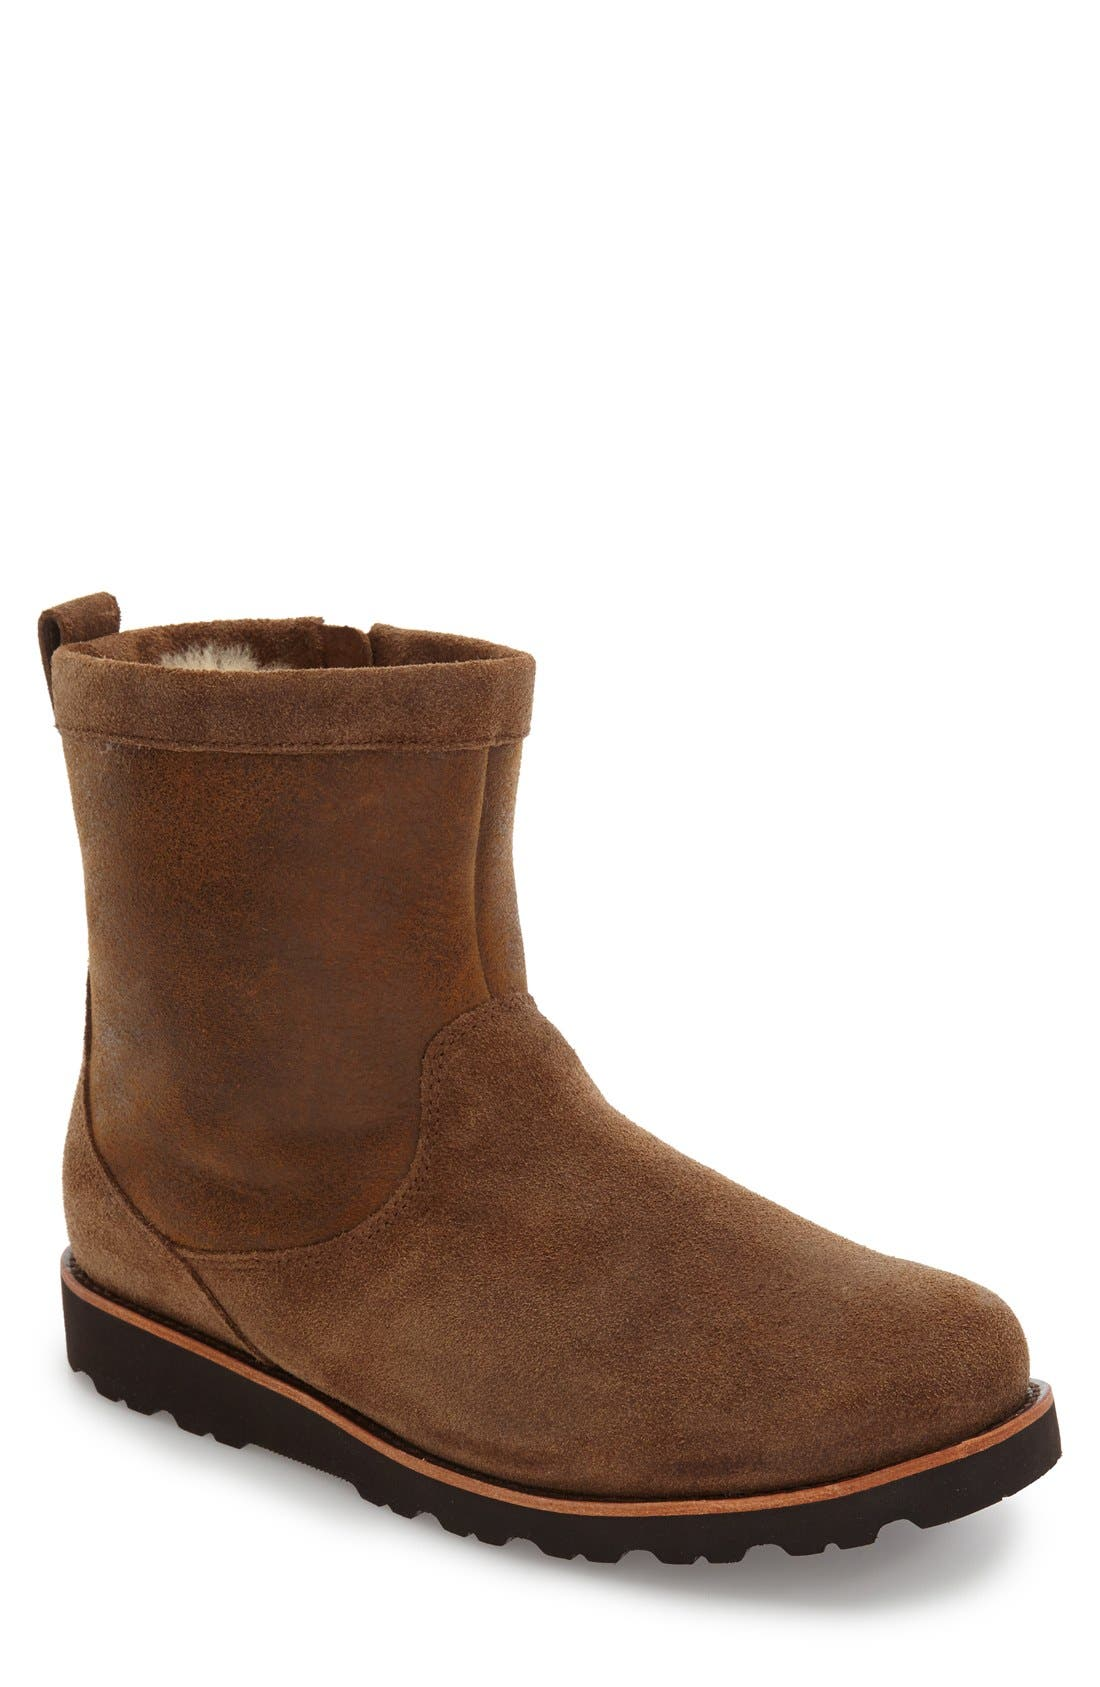 Main Image - UGG Hendren Bomber Zip Boot (Men)